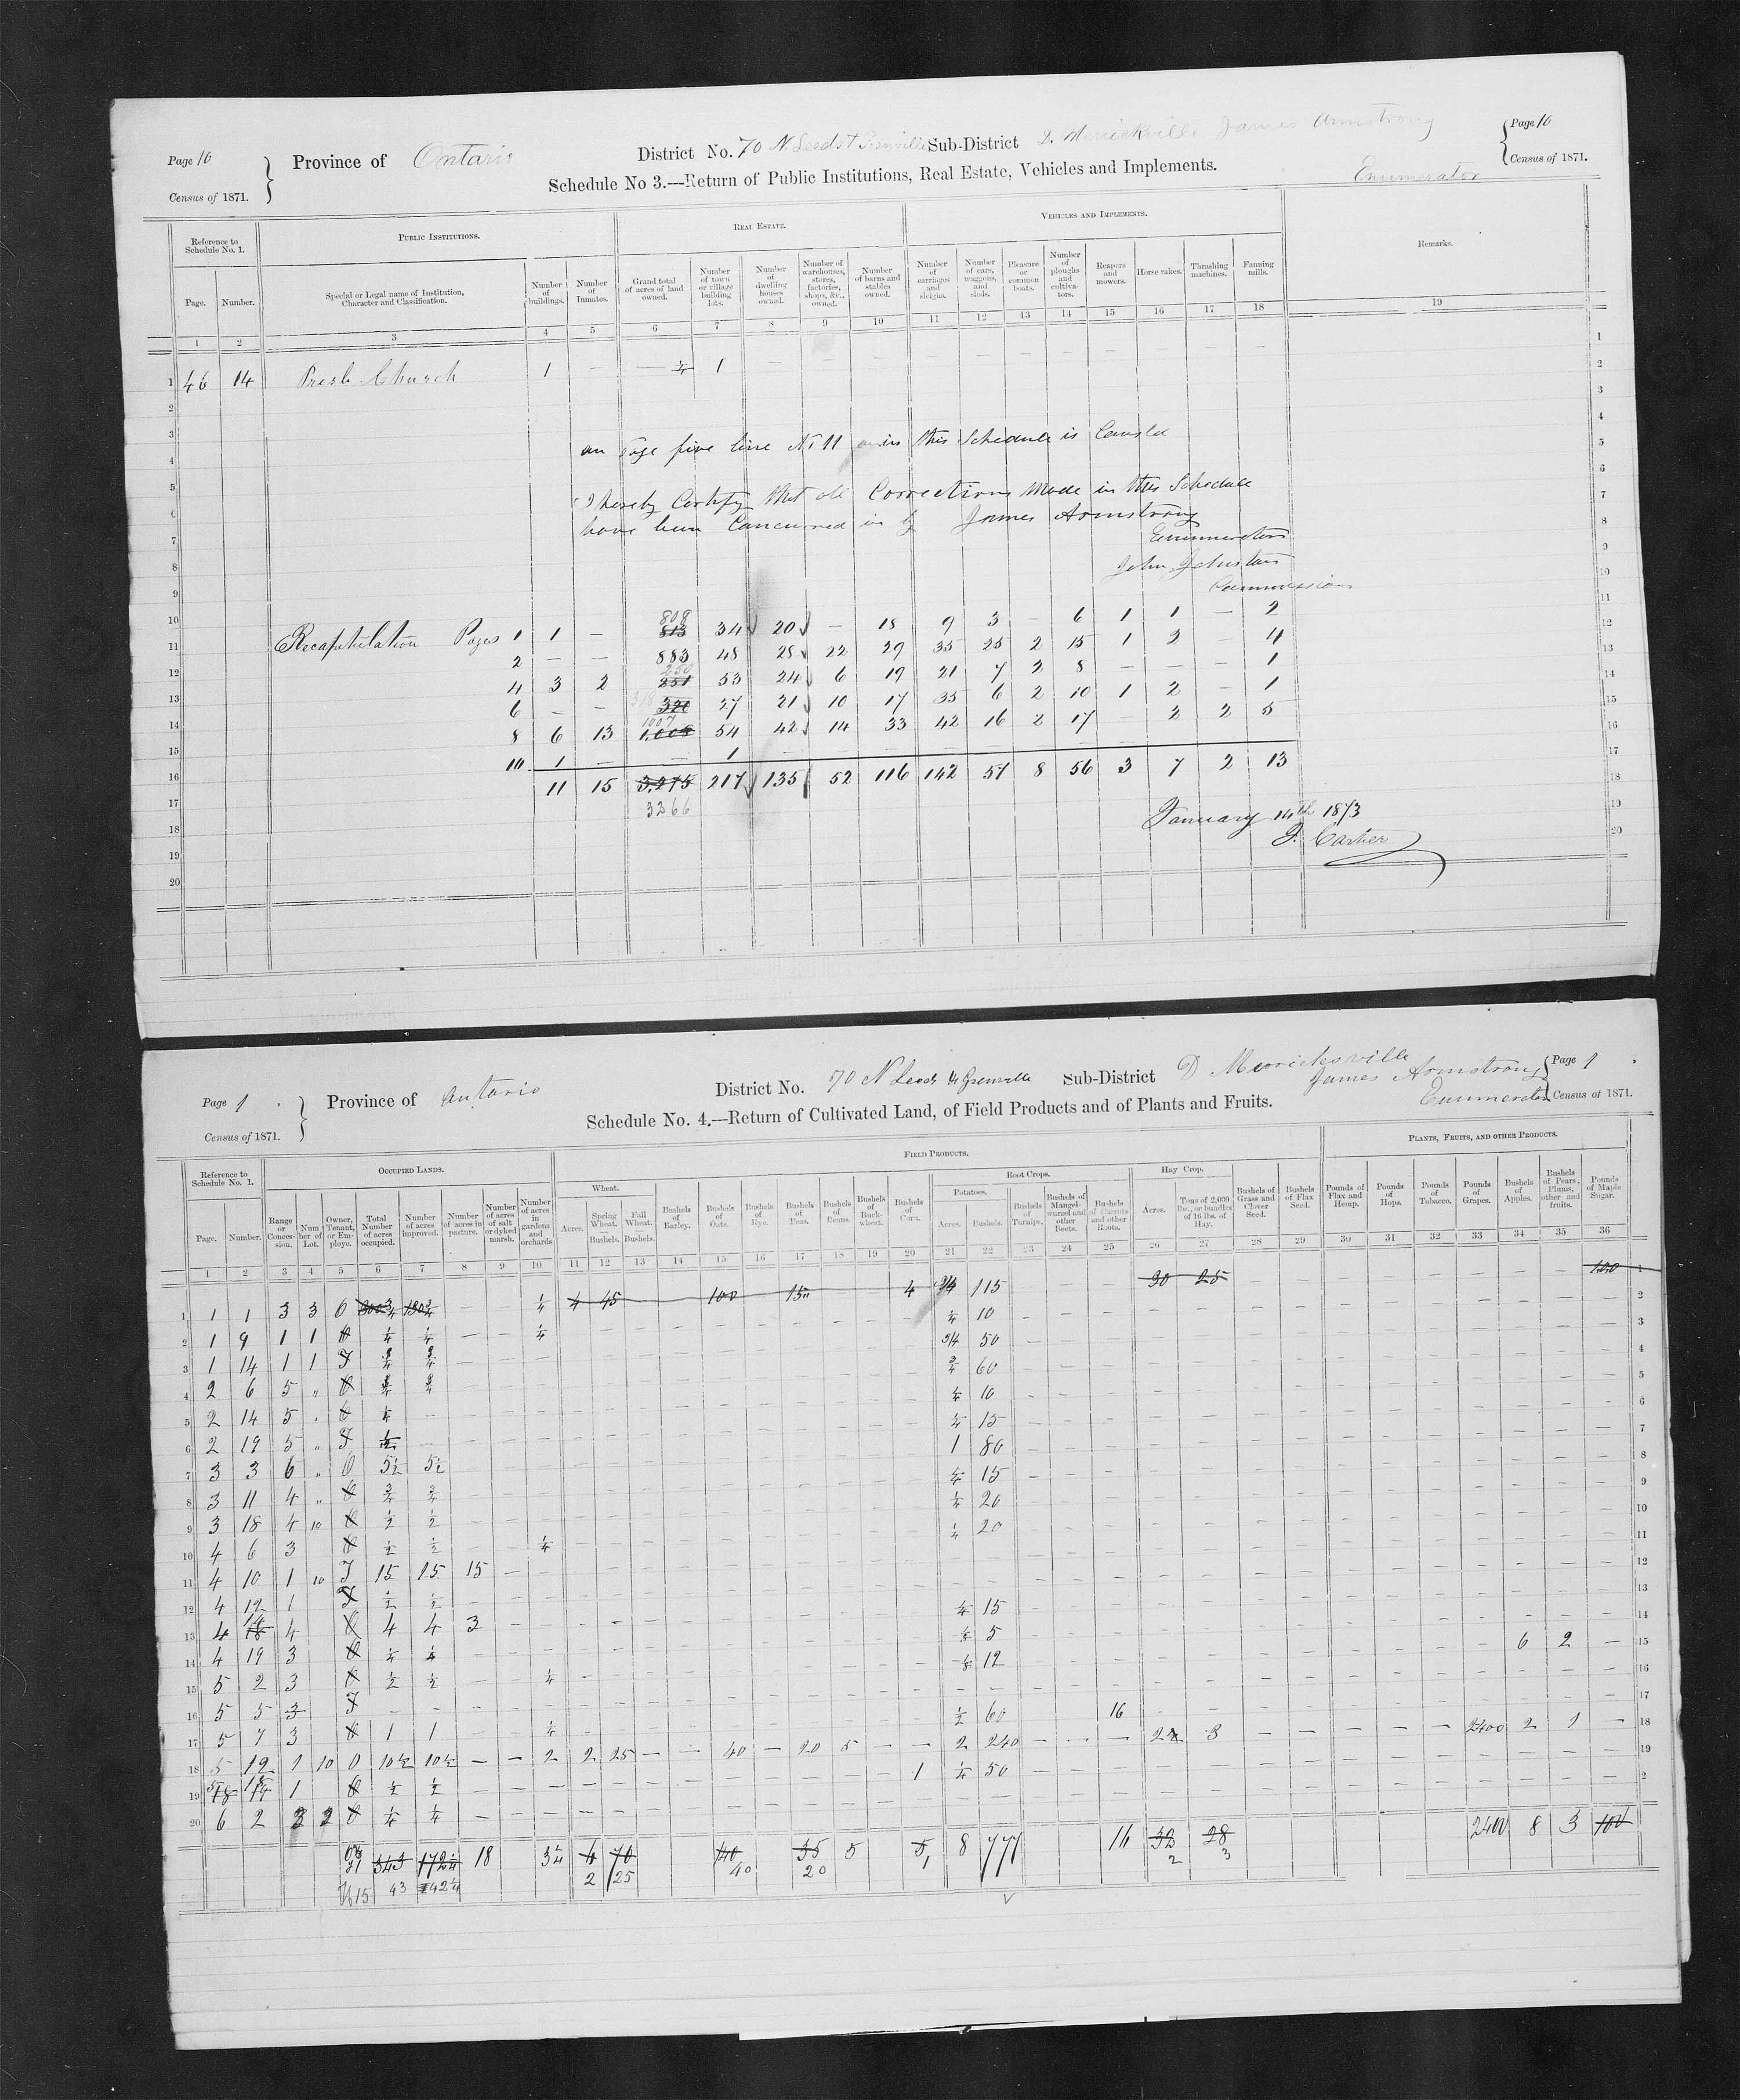 Title: Census of Canada, 1871 - Mikan Number: 142105 - Microform: c-10005